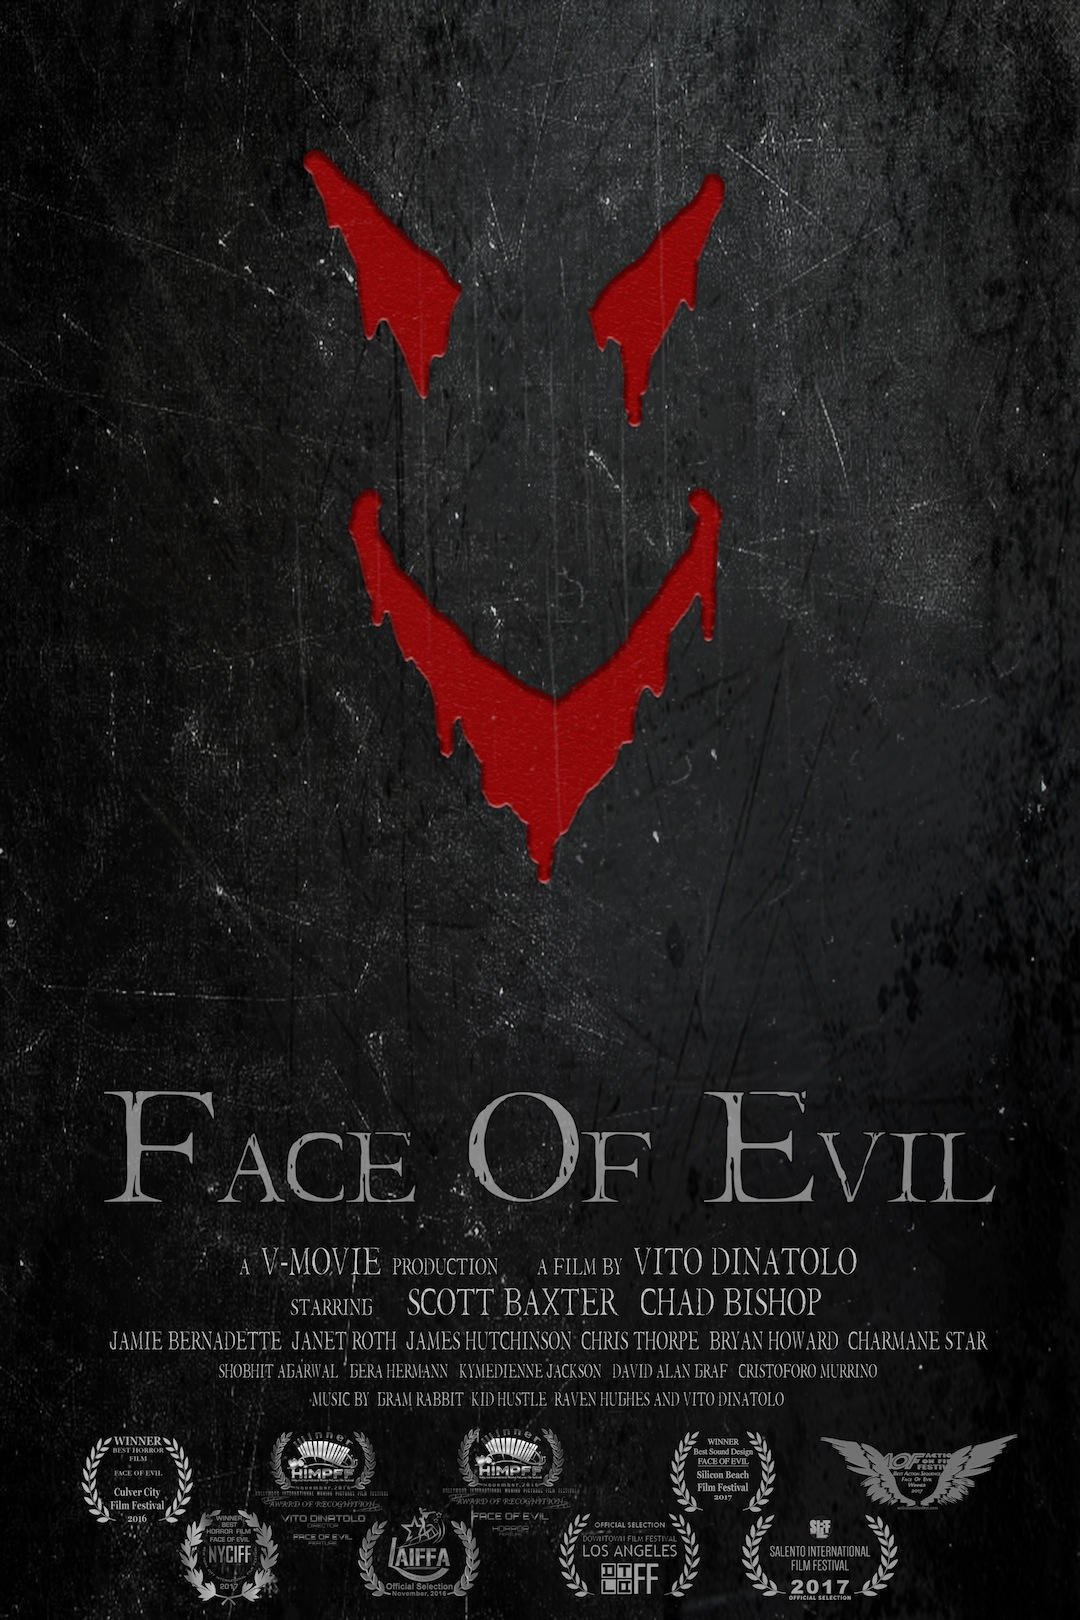 Face of Evil hd on soap2day